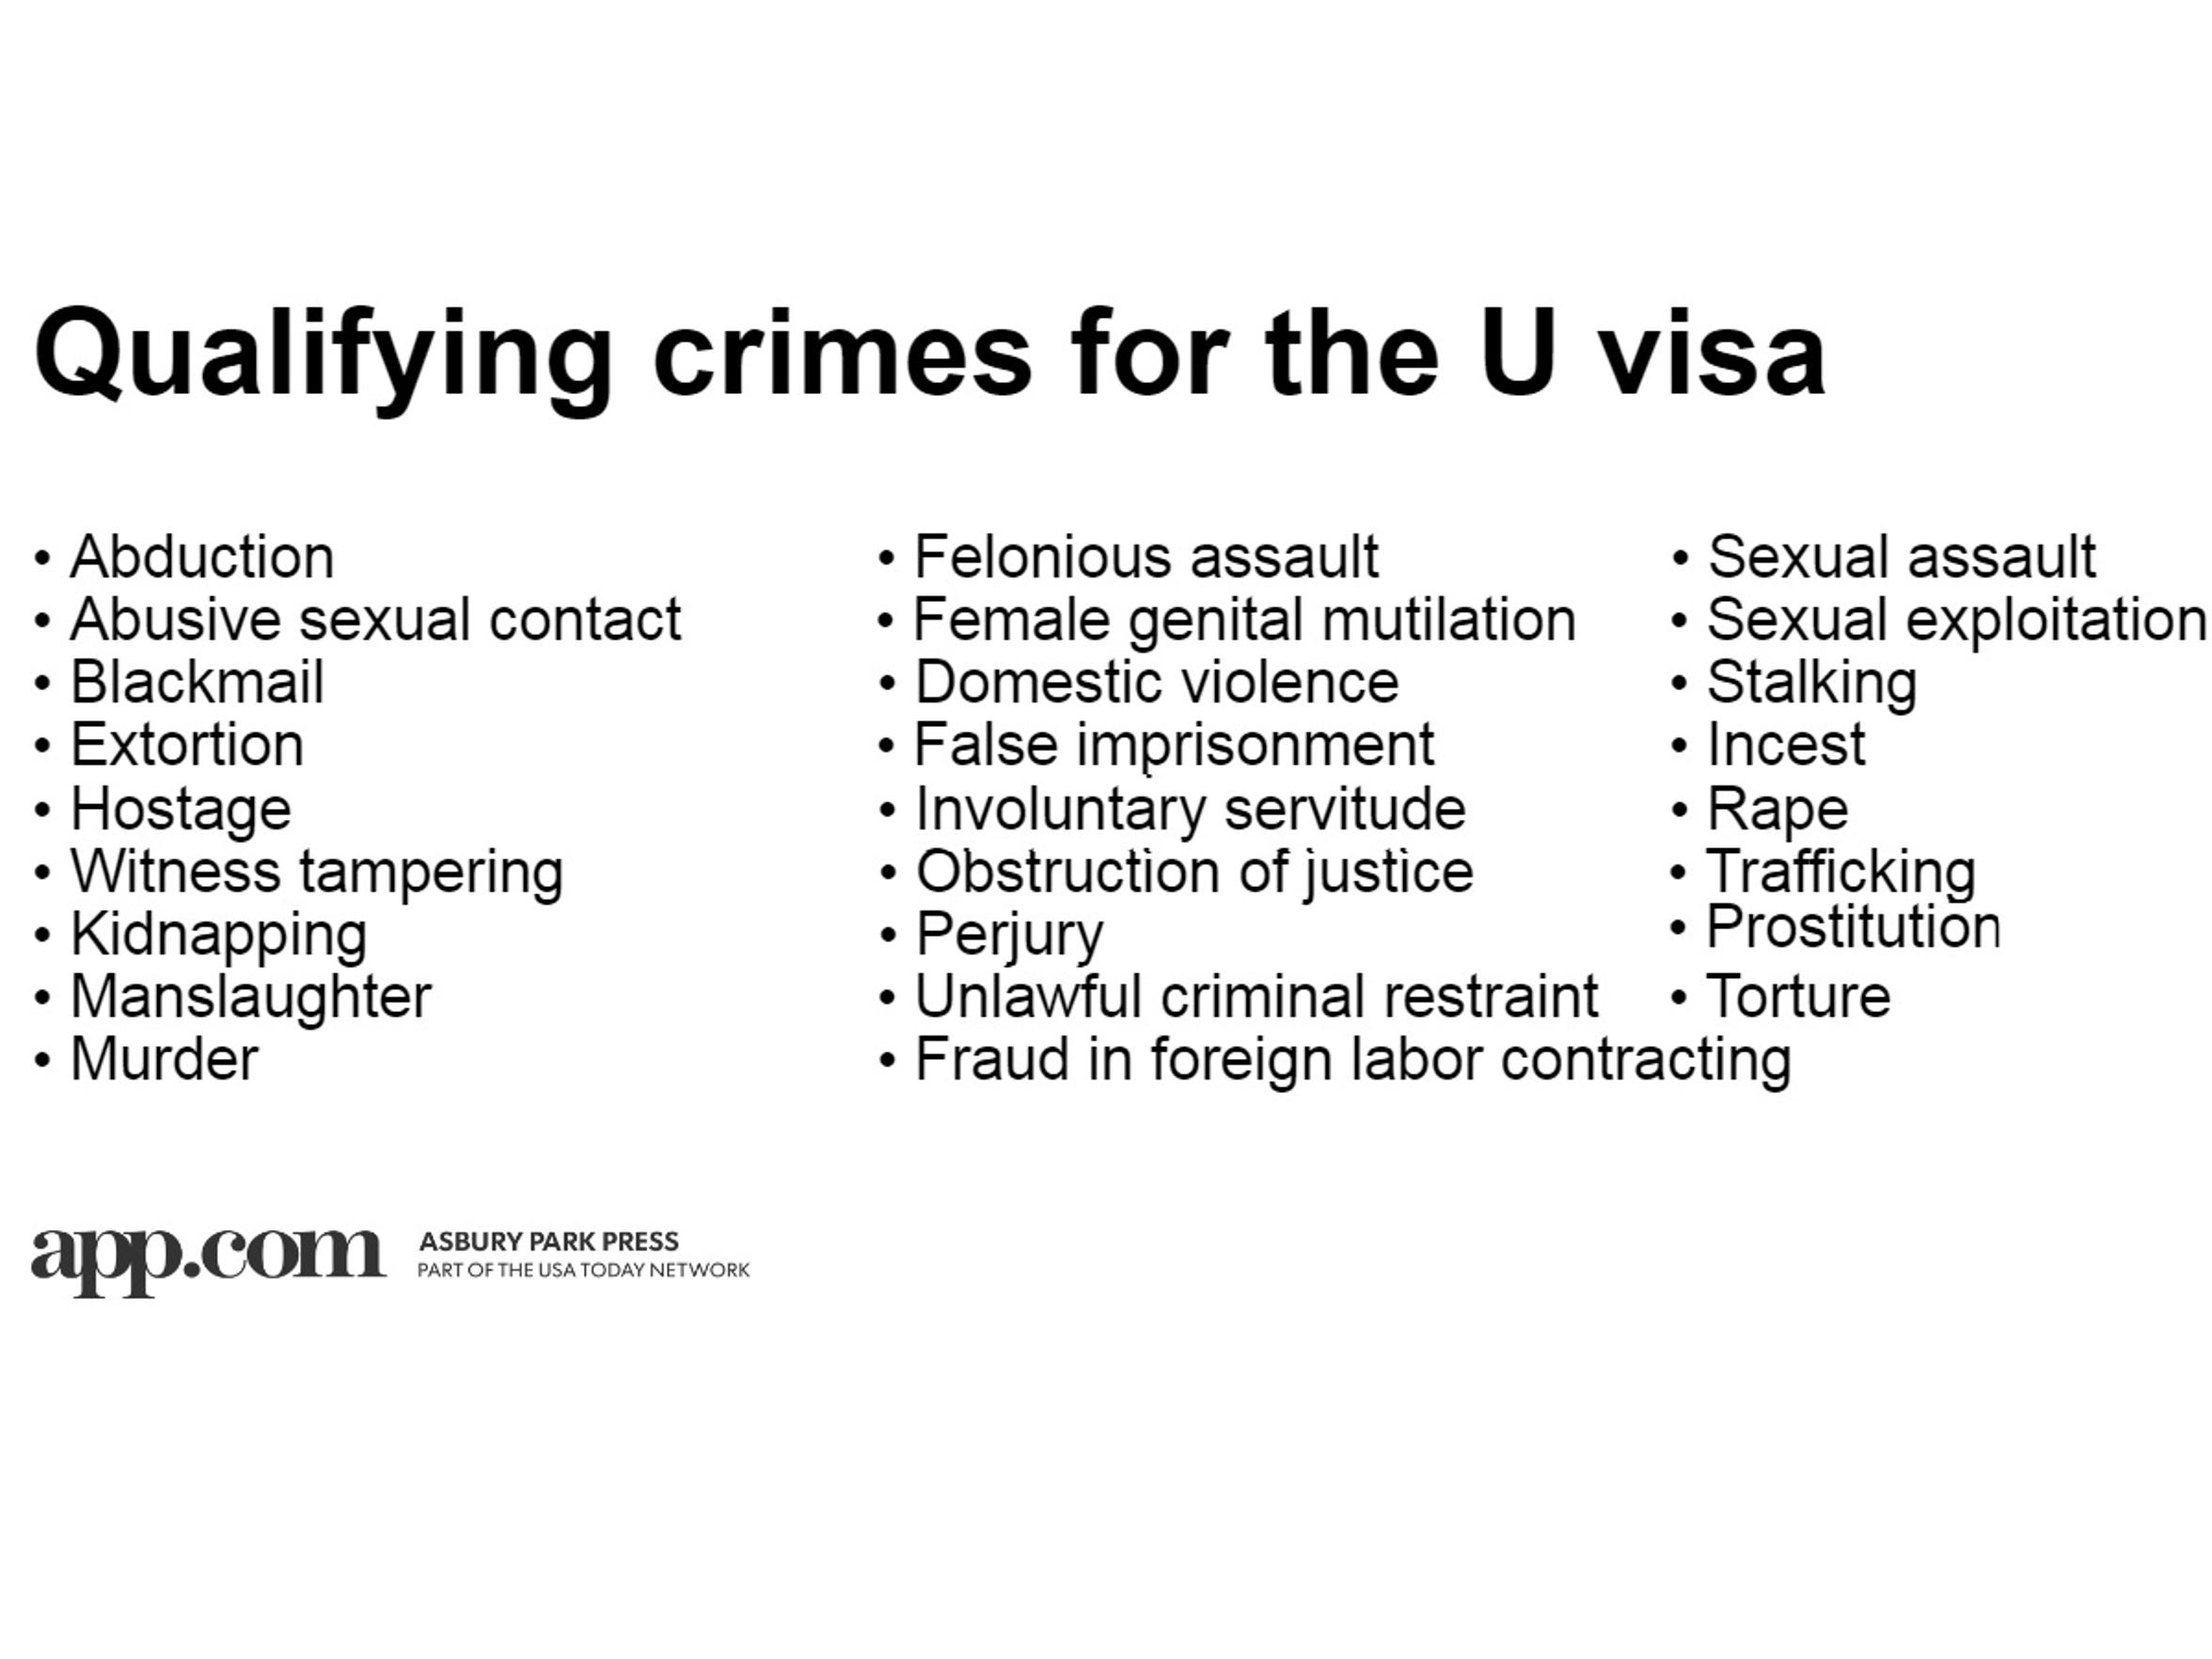 A list of federal crimes that could qualify a victim for a U visa. Other, similar crimes, also count.